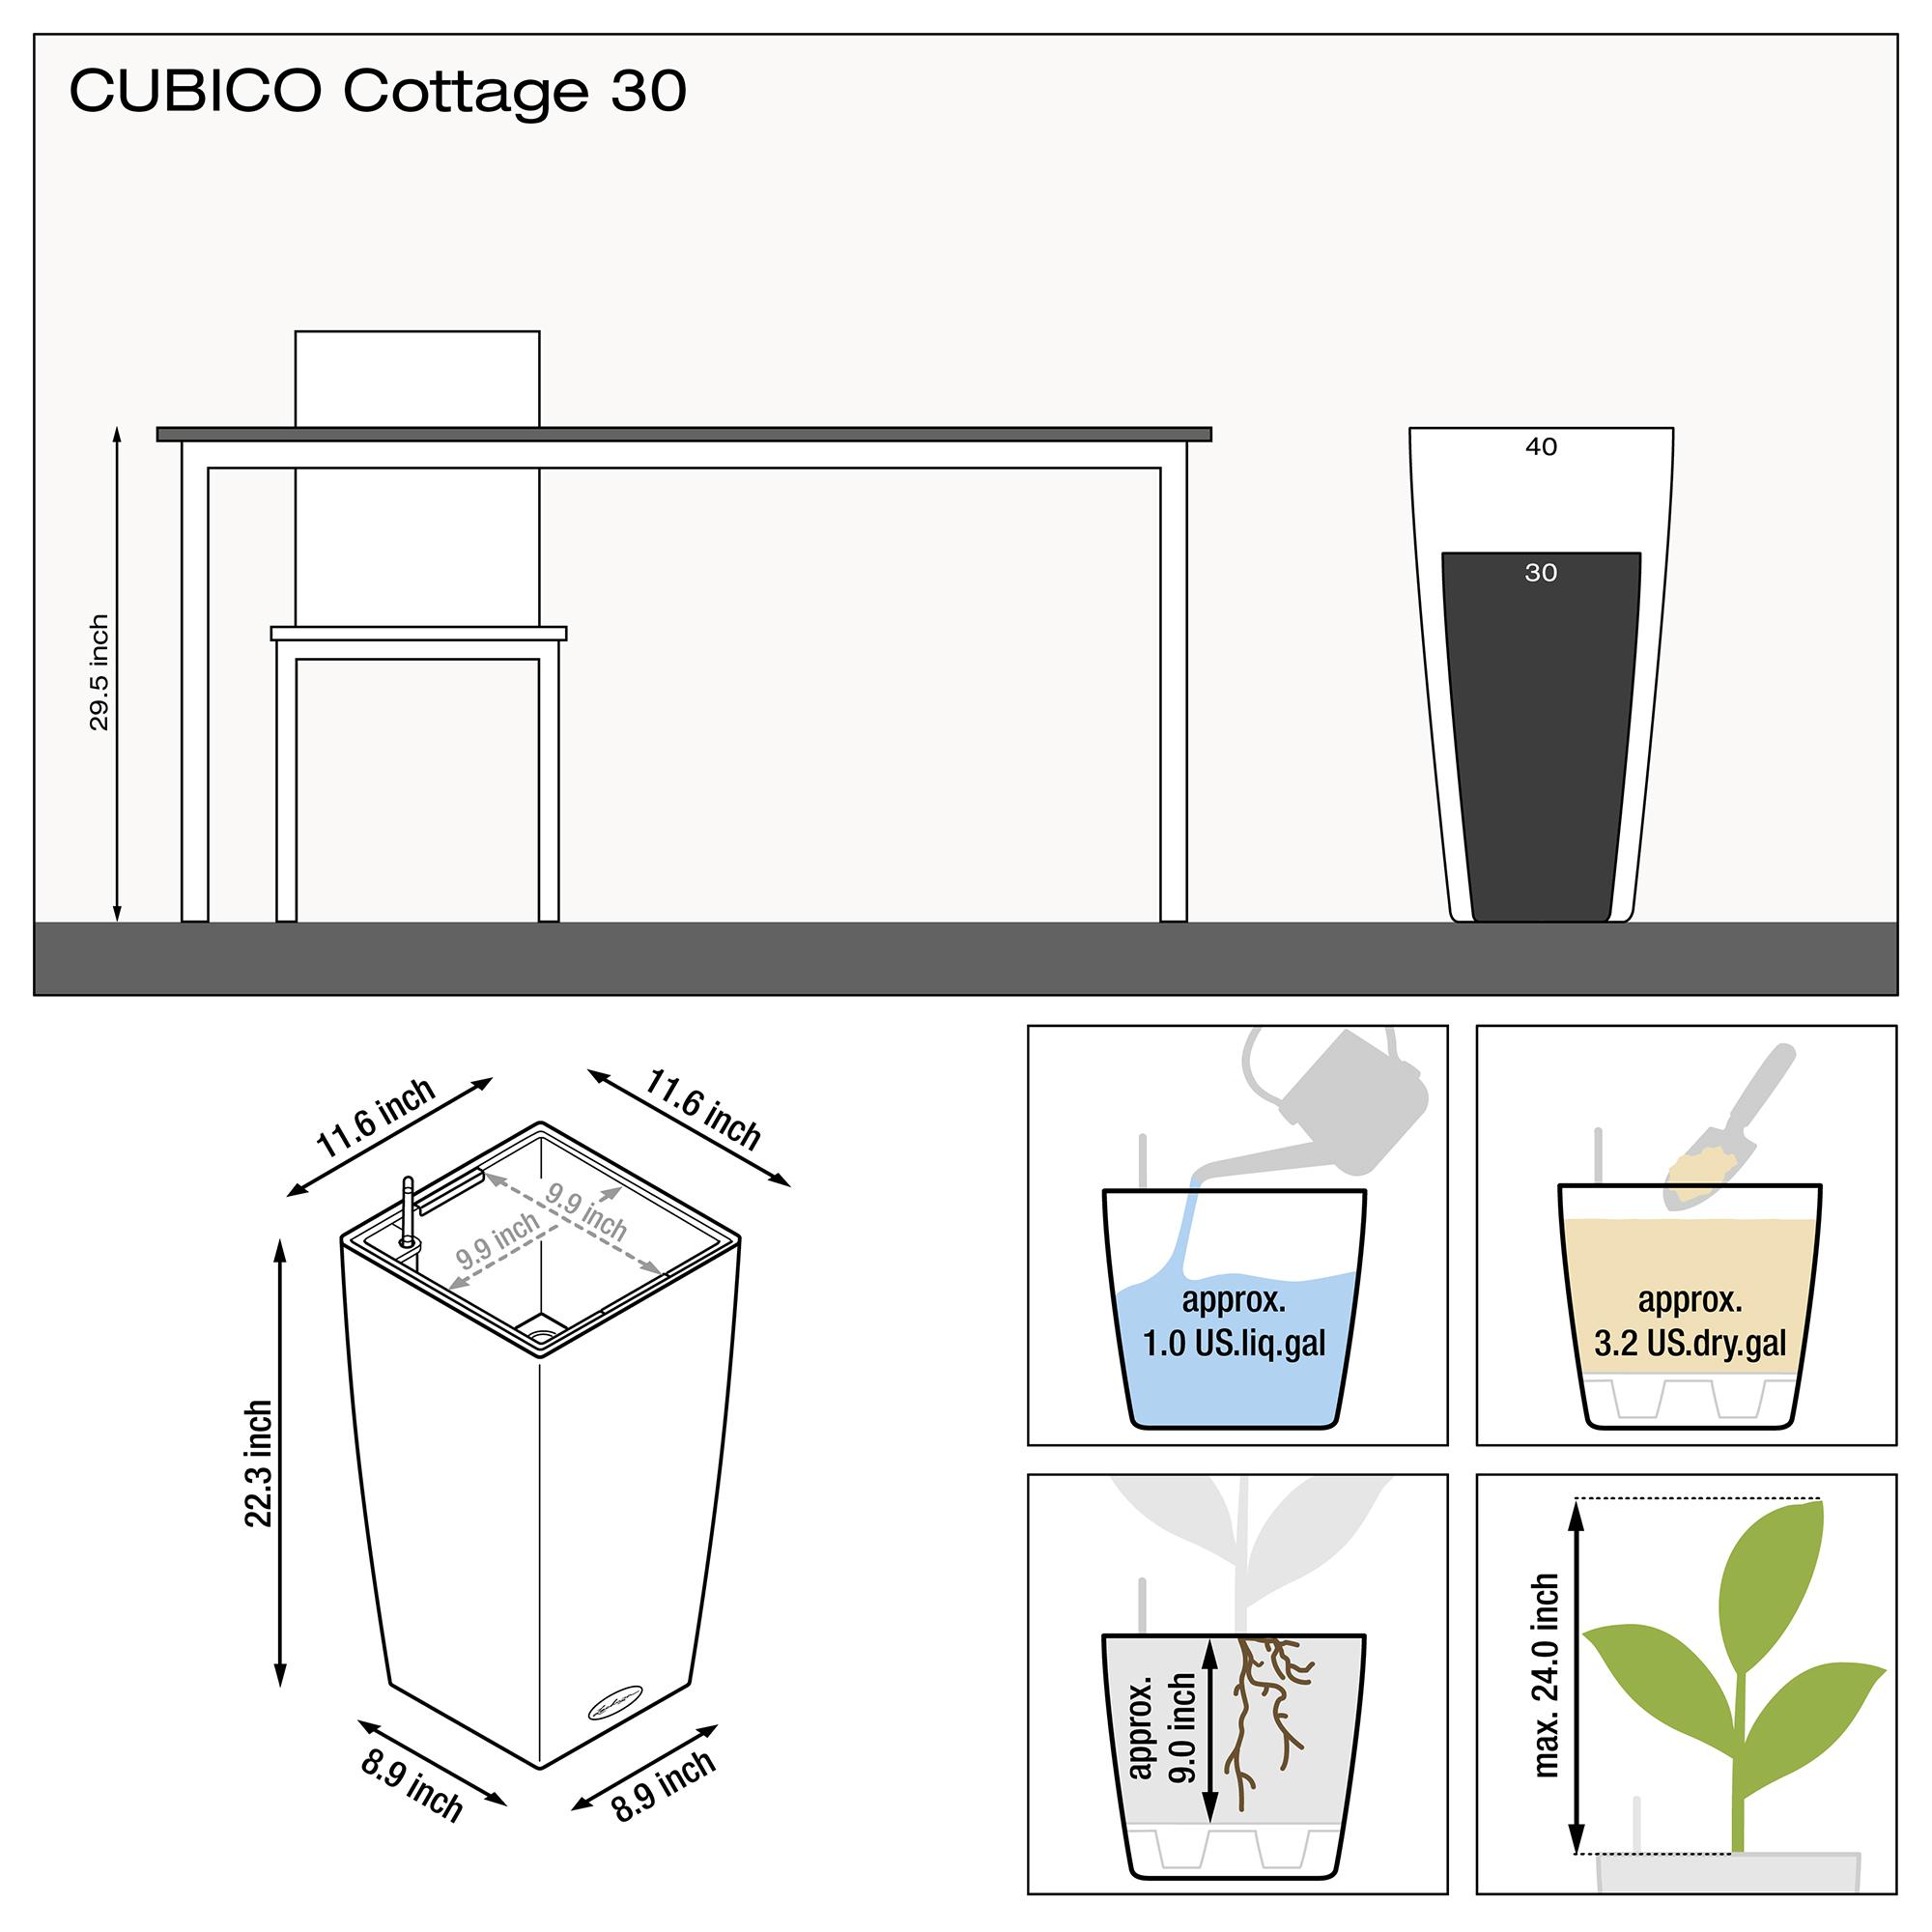 le_cubico-cottage30_product_addi_nz_us